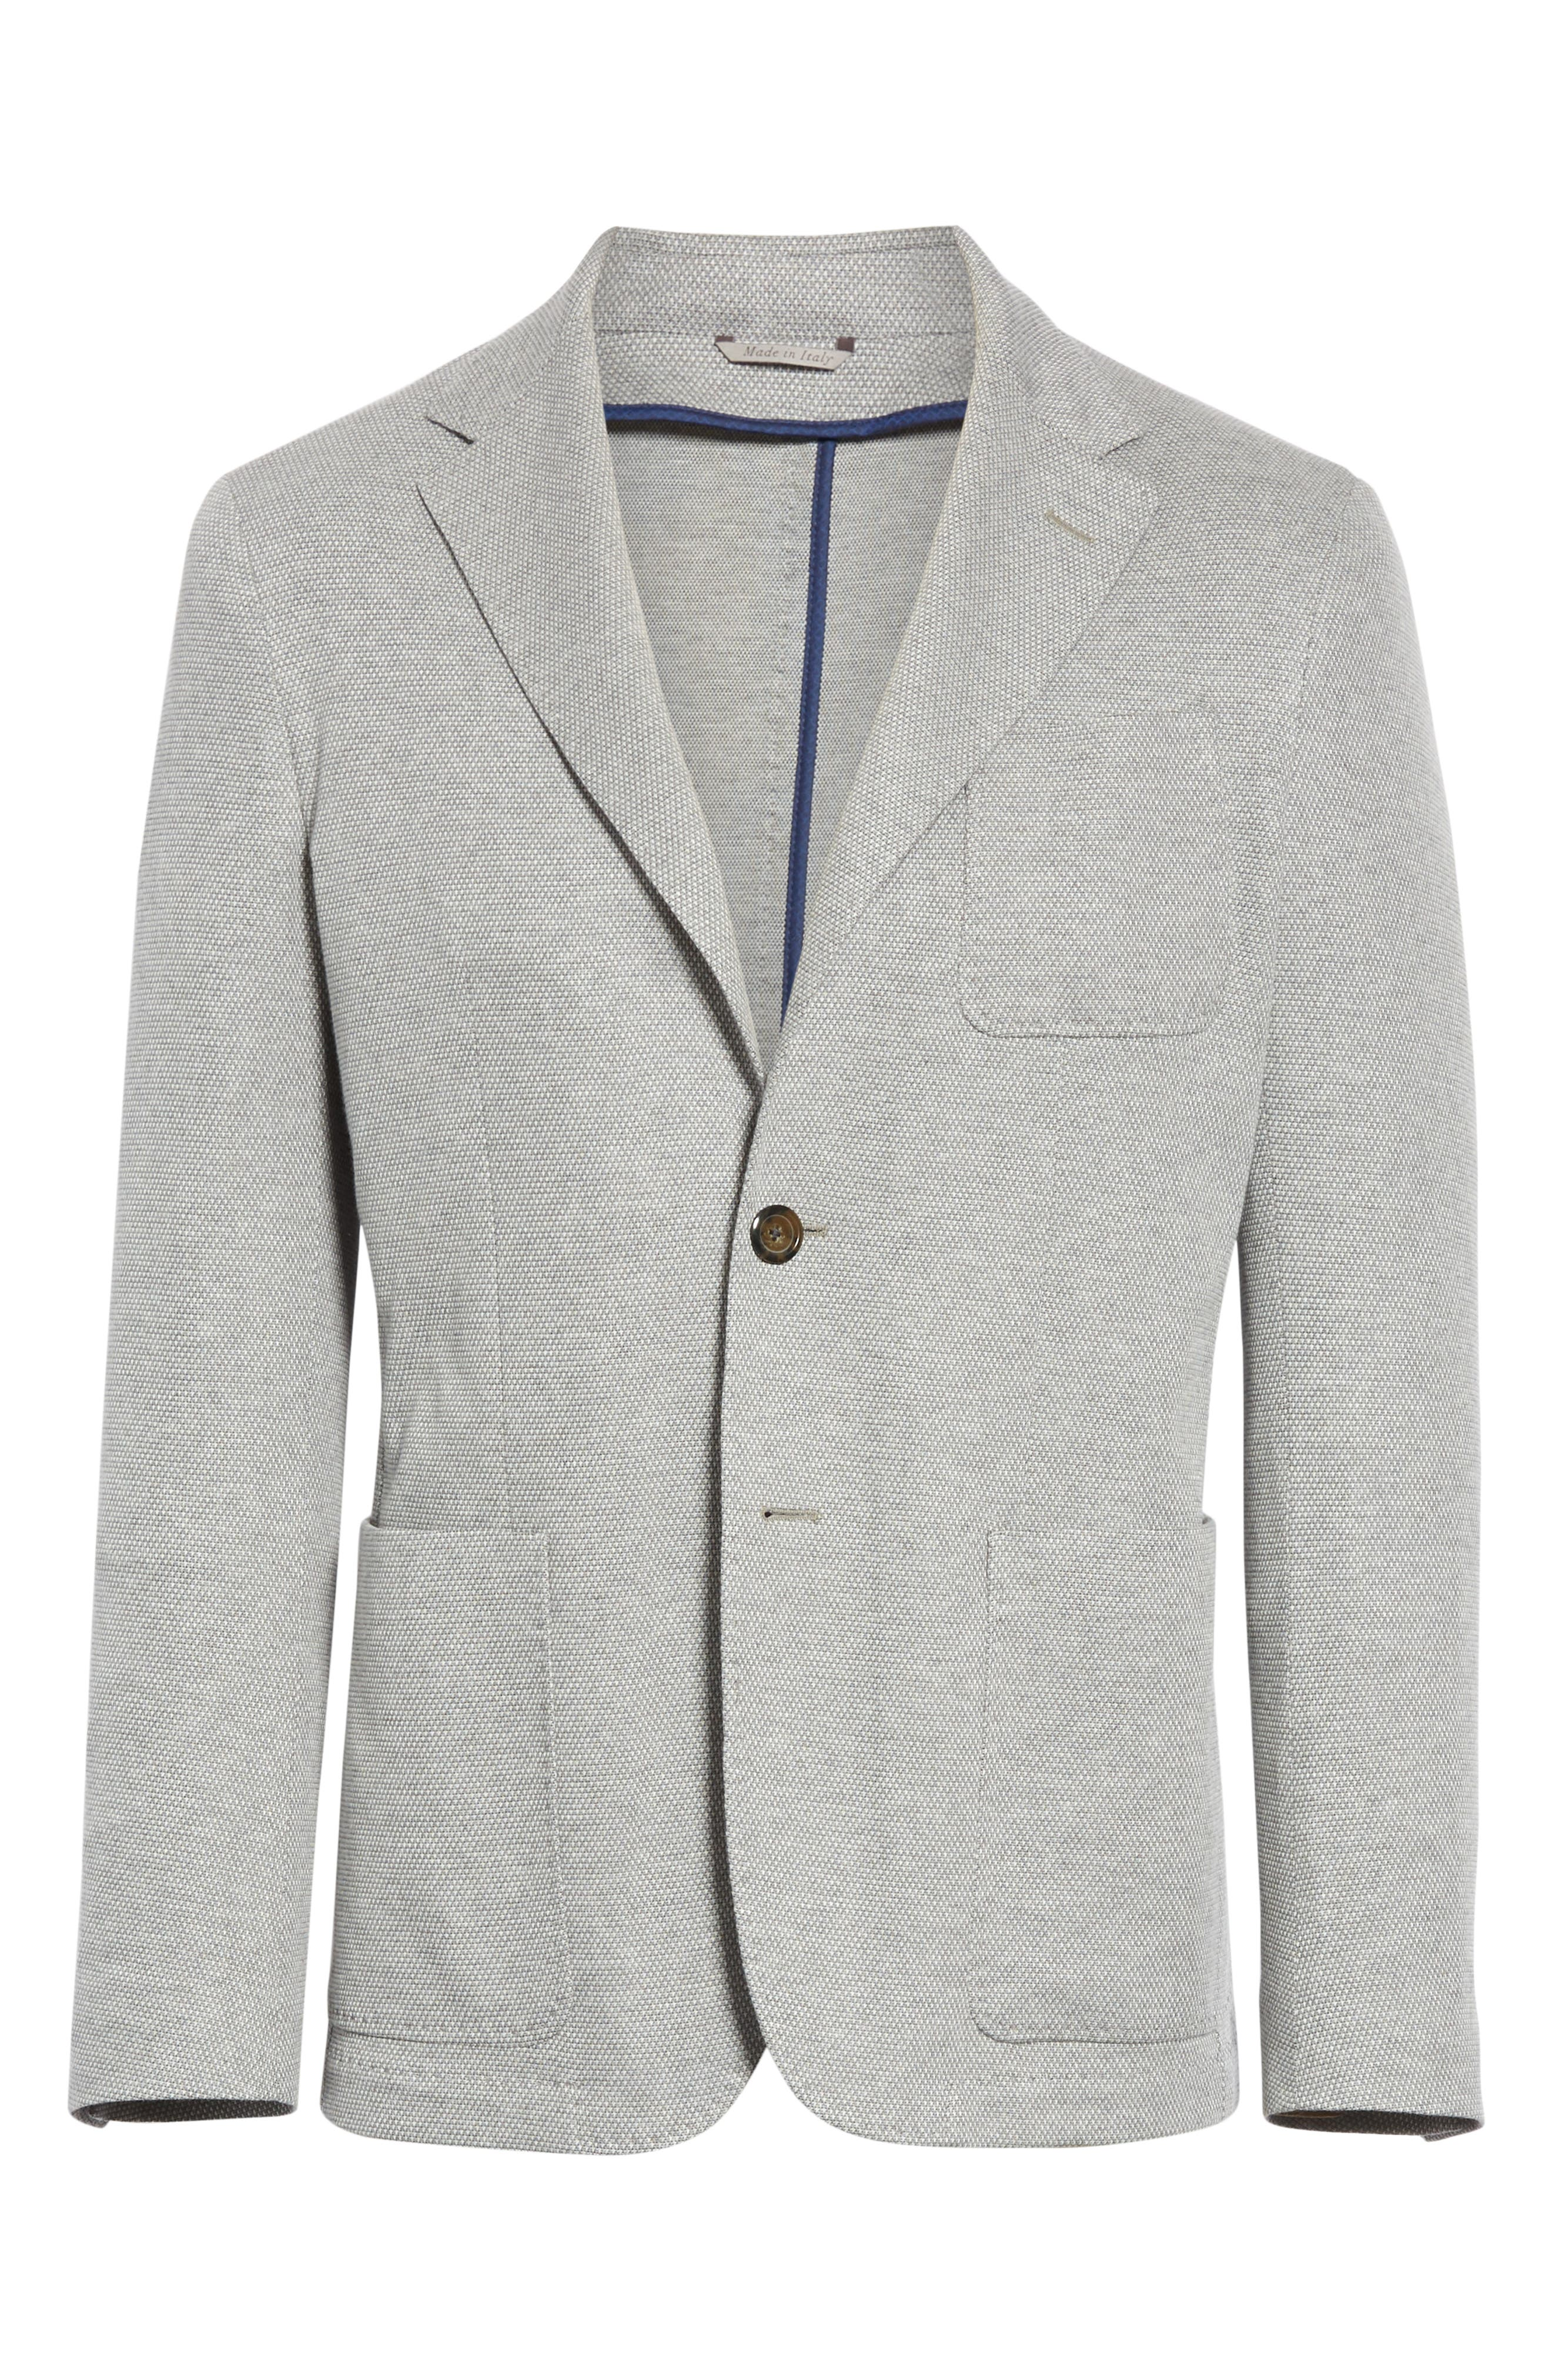 CANALI, Classic Fit Washed Sport Coat, Alternate thumbnail 5, color, LIGHT GREY